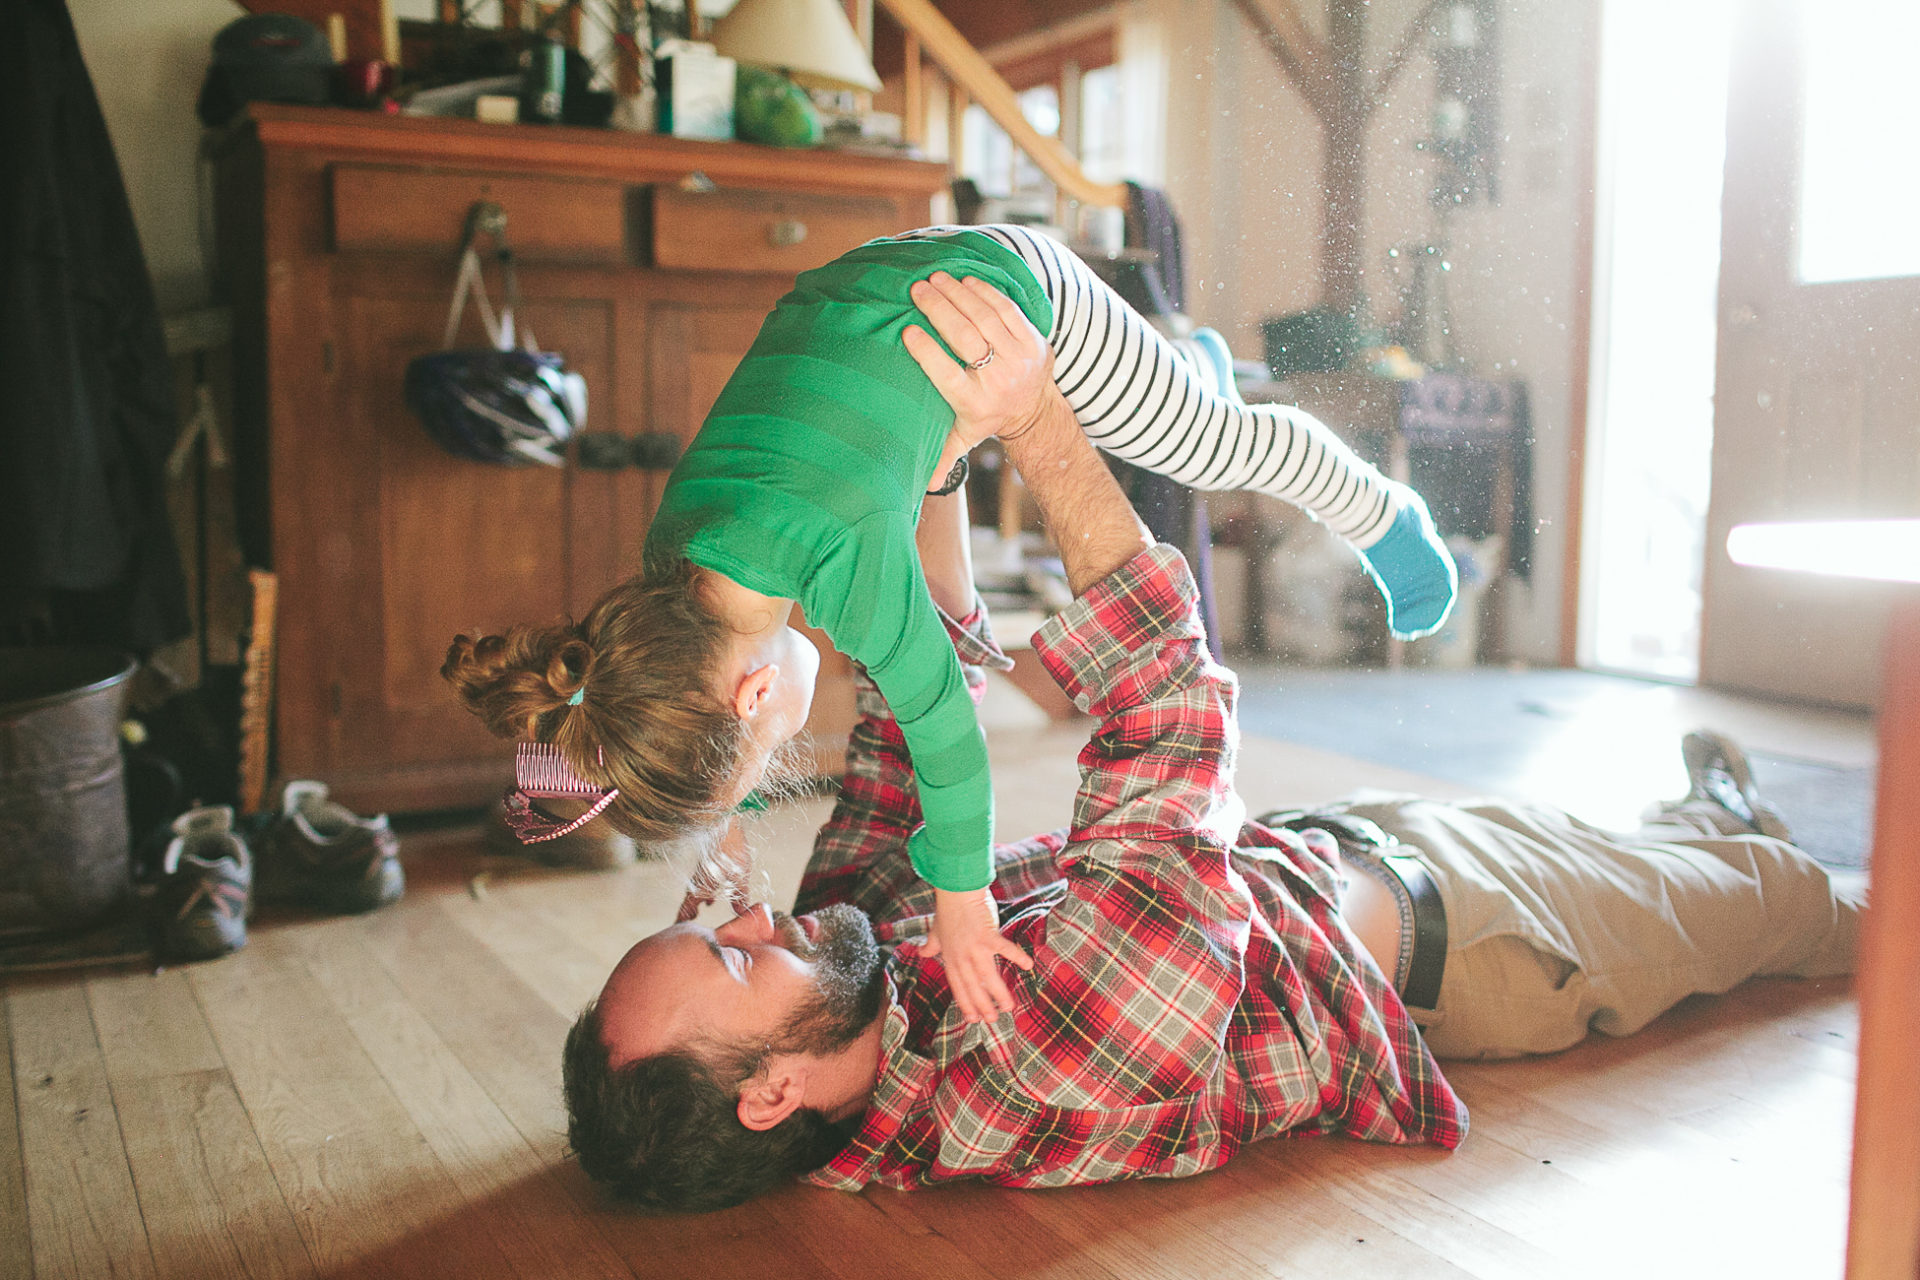 A dad plays airplane with his kid in a lifestyle photo